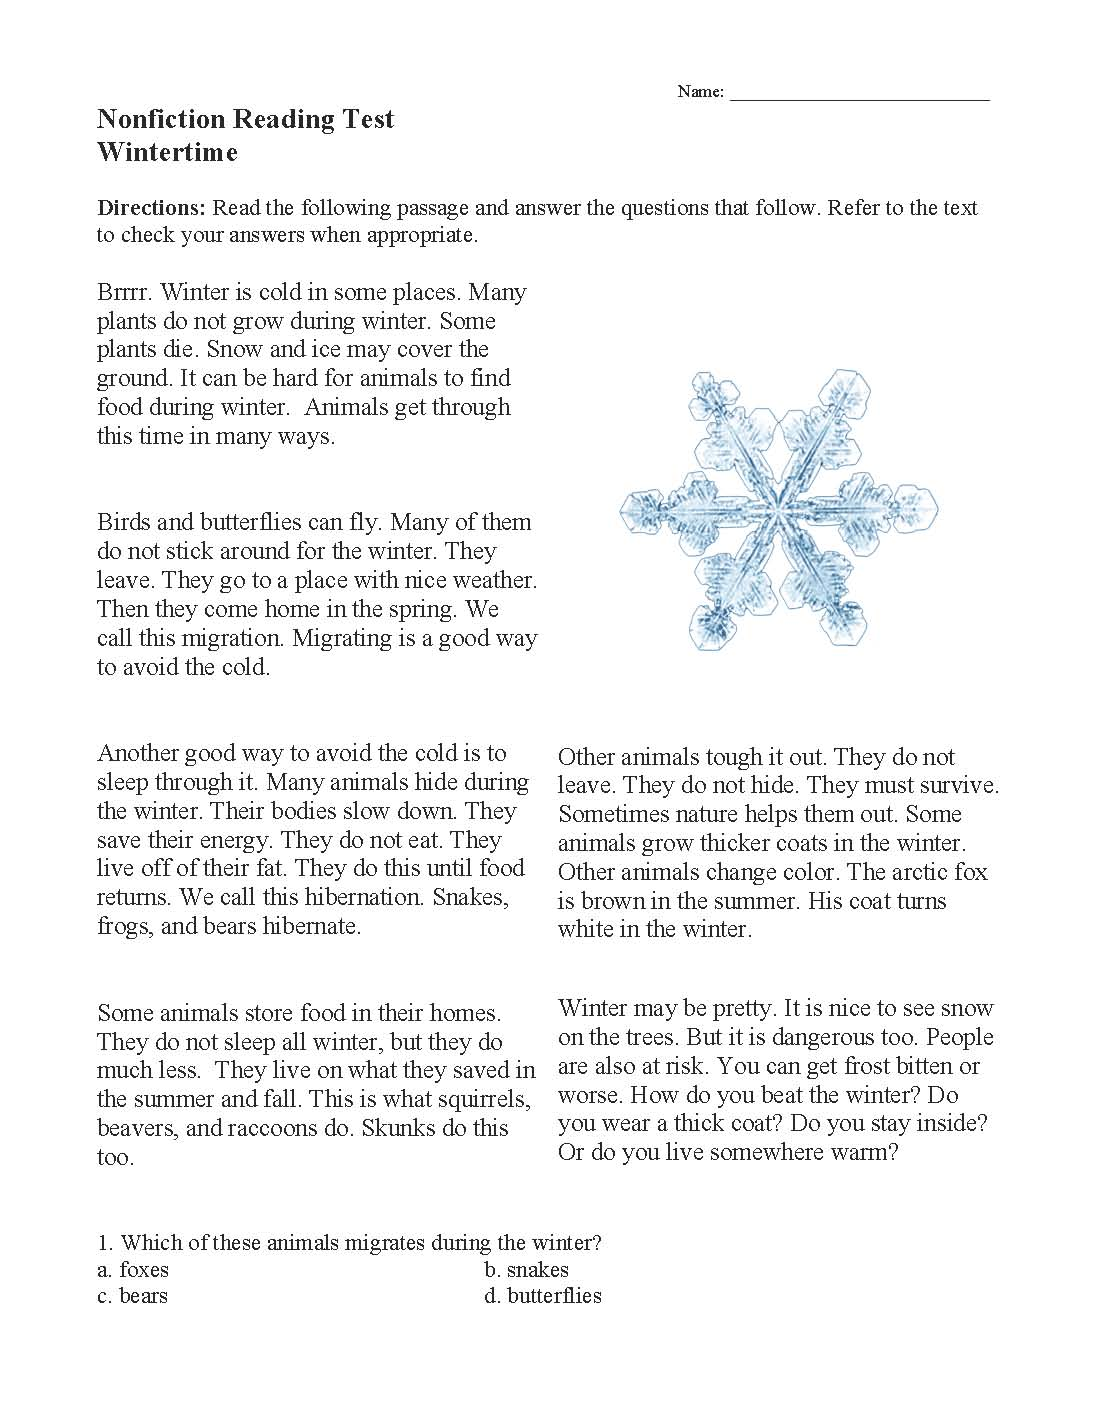 This is a preview image of Wintertime. Click on it to enlarge it or view the source file.